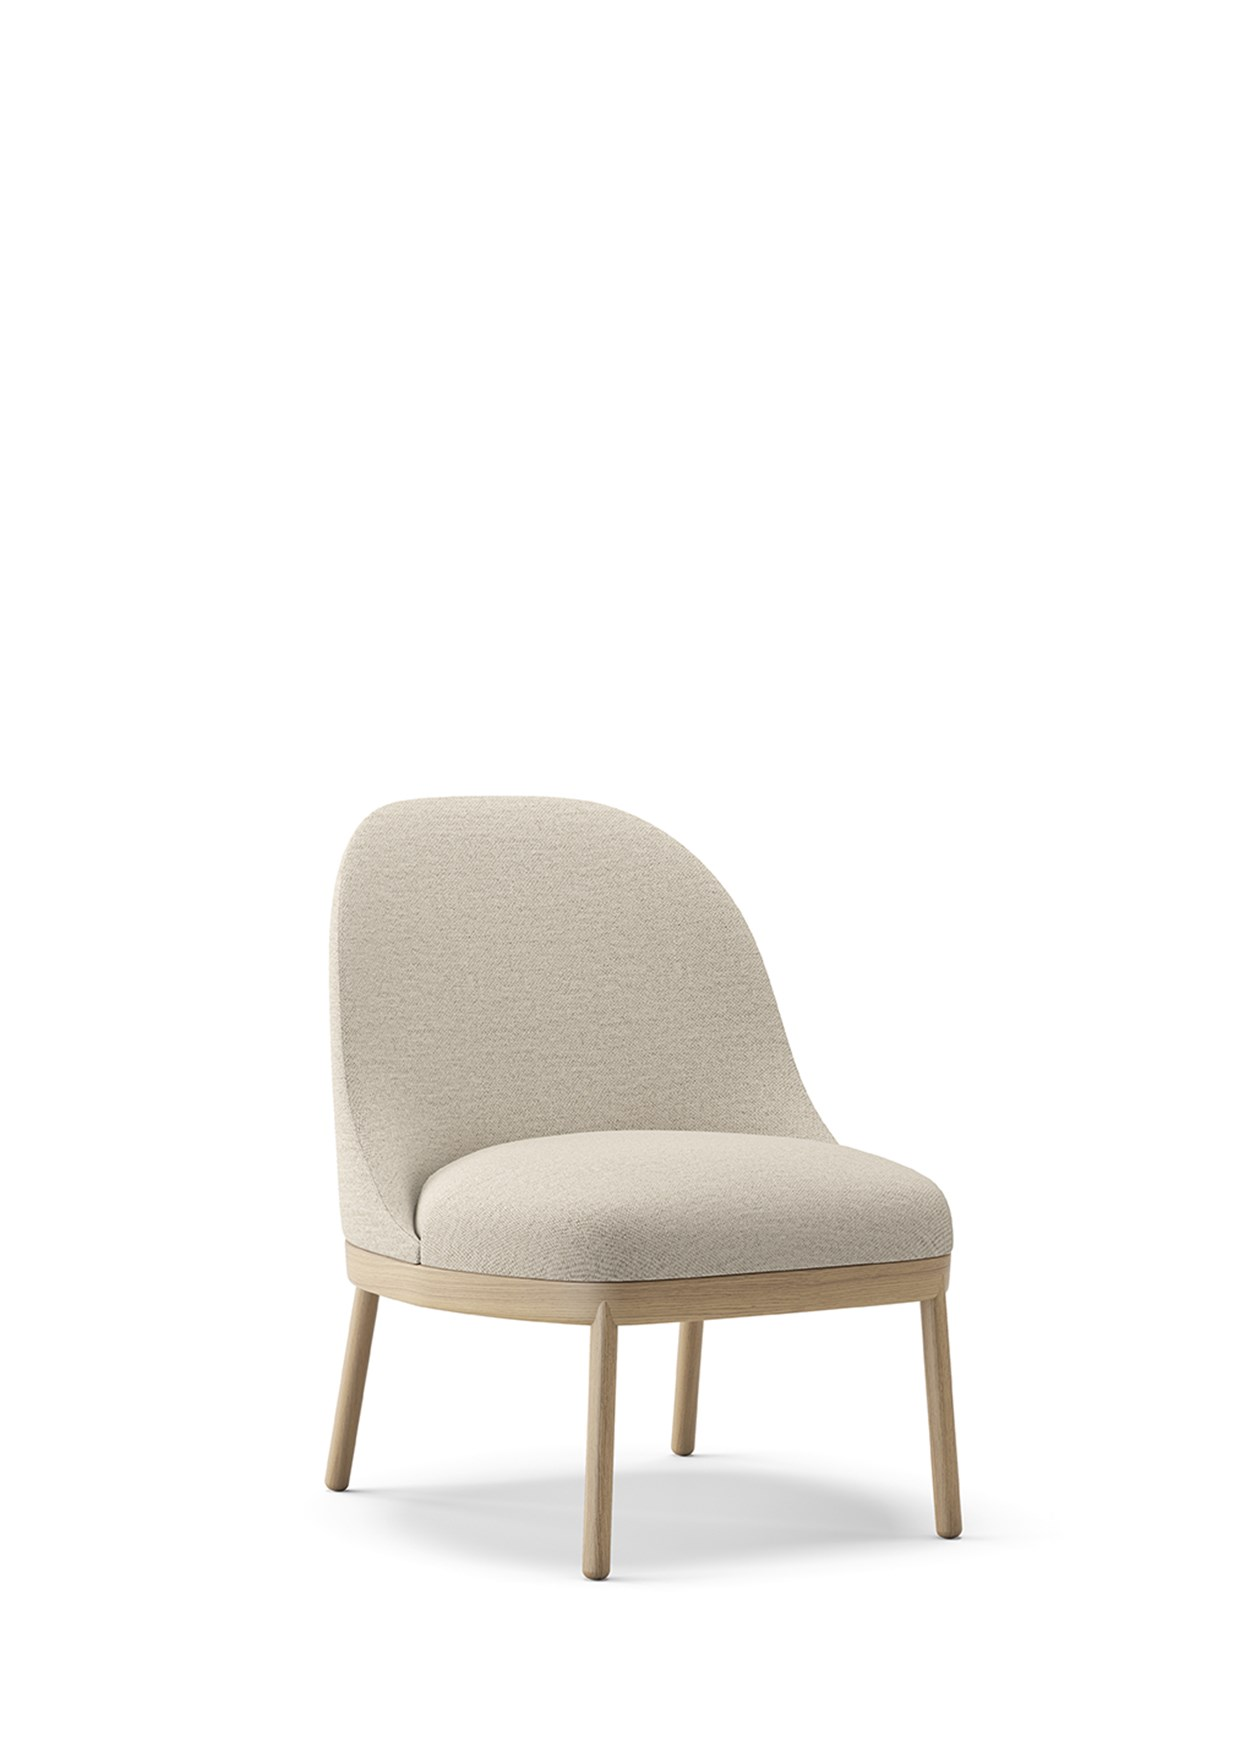 VICCARBE_ALETA Lounge Chair wooden base (3).jpg